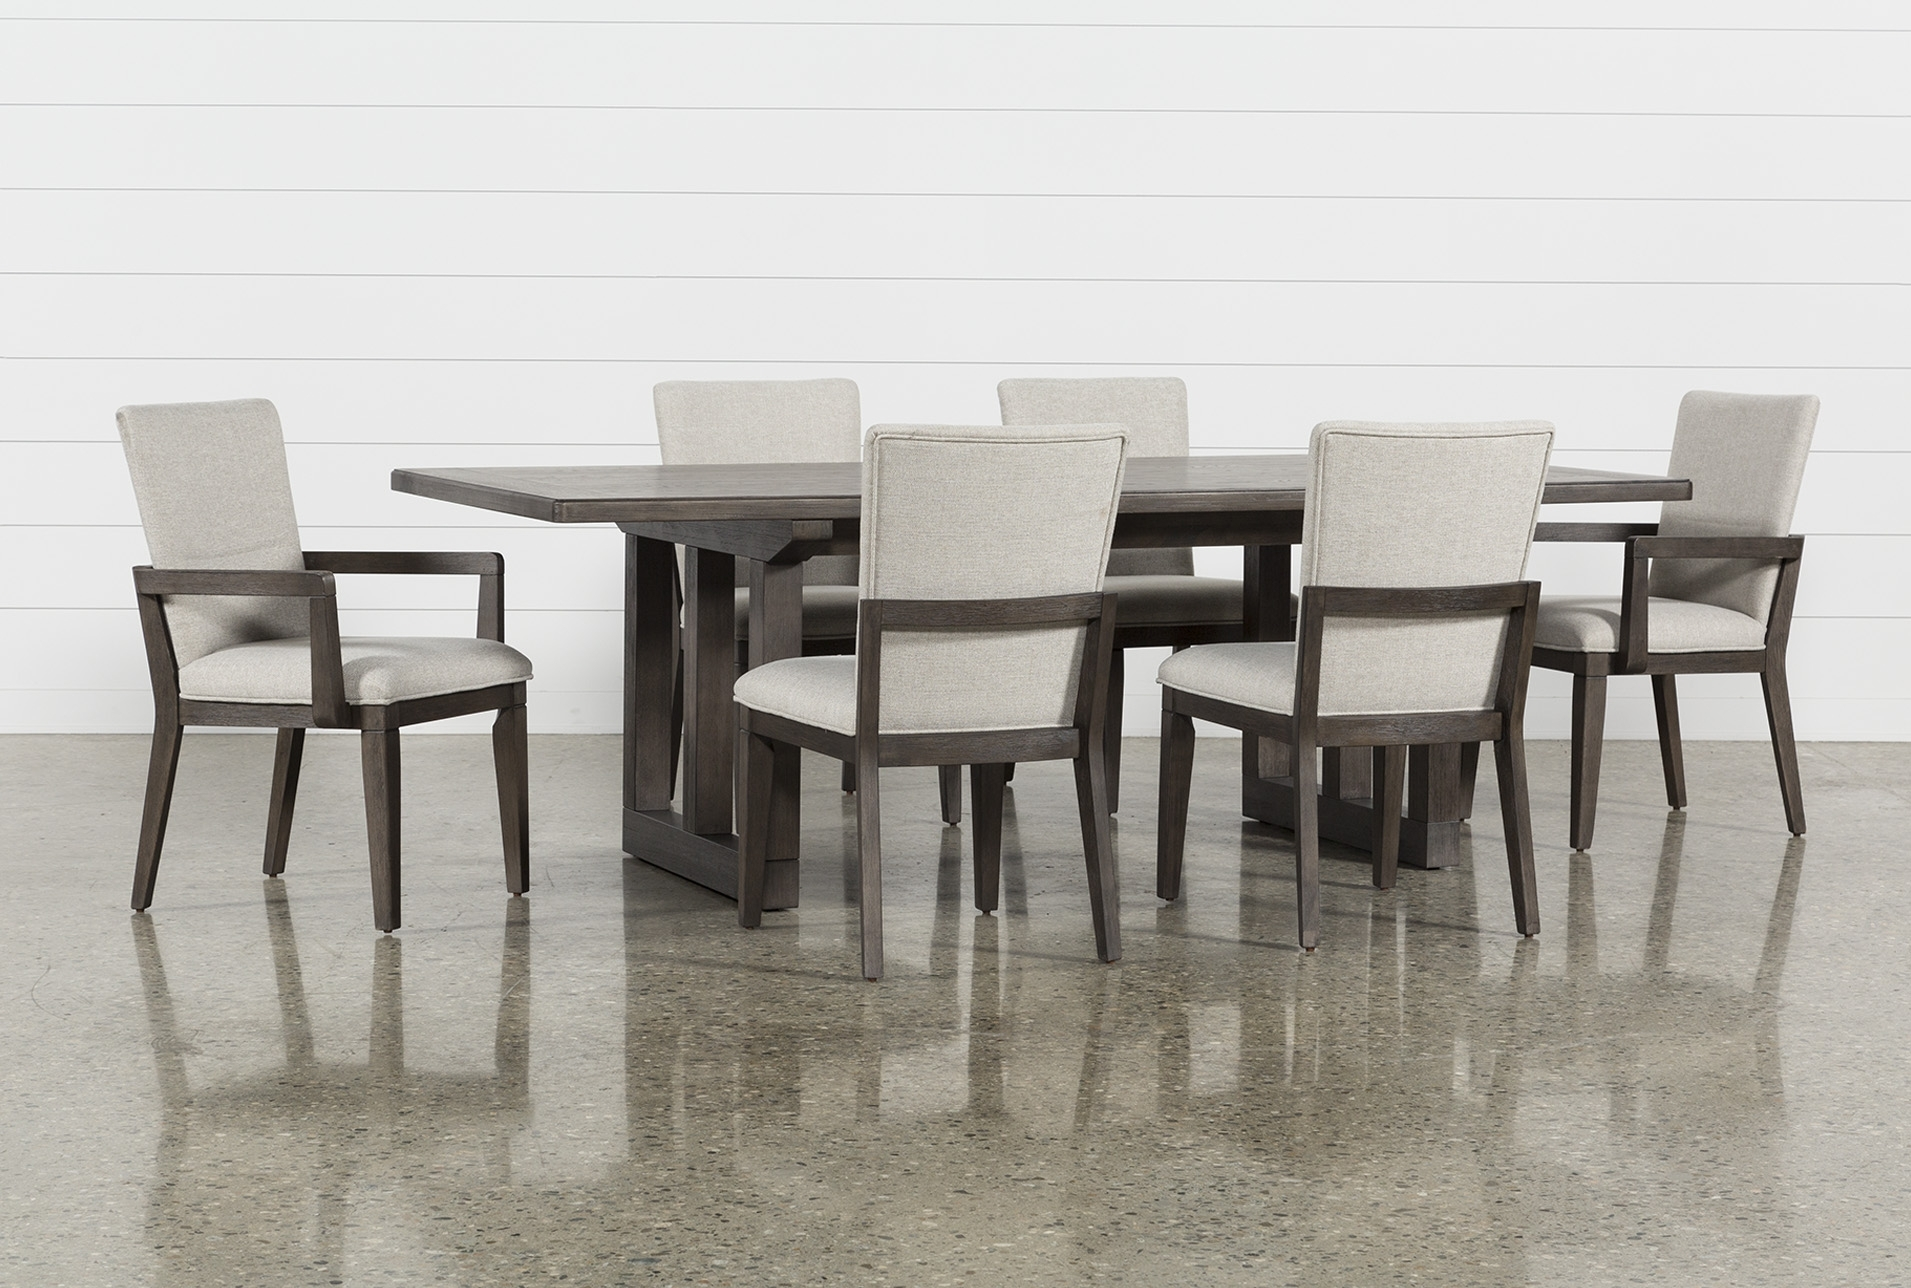 Toby 7 Piece Dining Setorren Ellis Reviews Within Most Up To Date Combs 5 Piece 48 Inch Extension Dining Sets With Mindy Side Chairs (View 13 of 20)